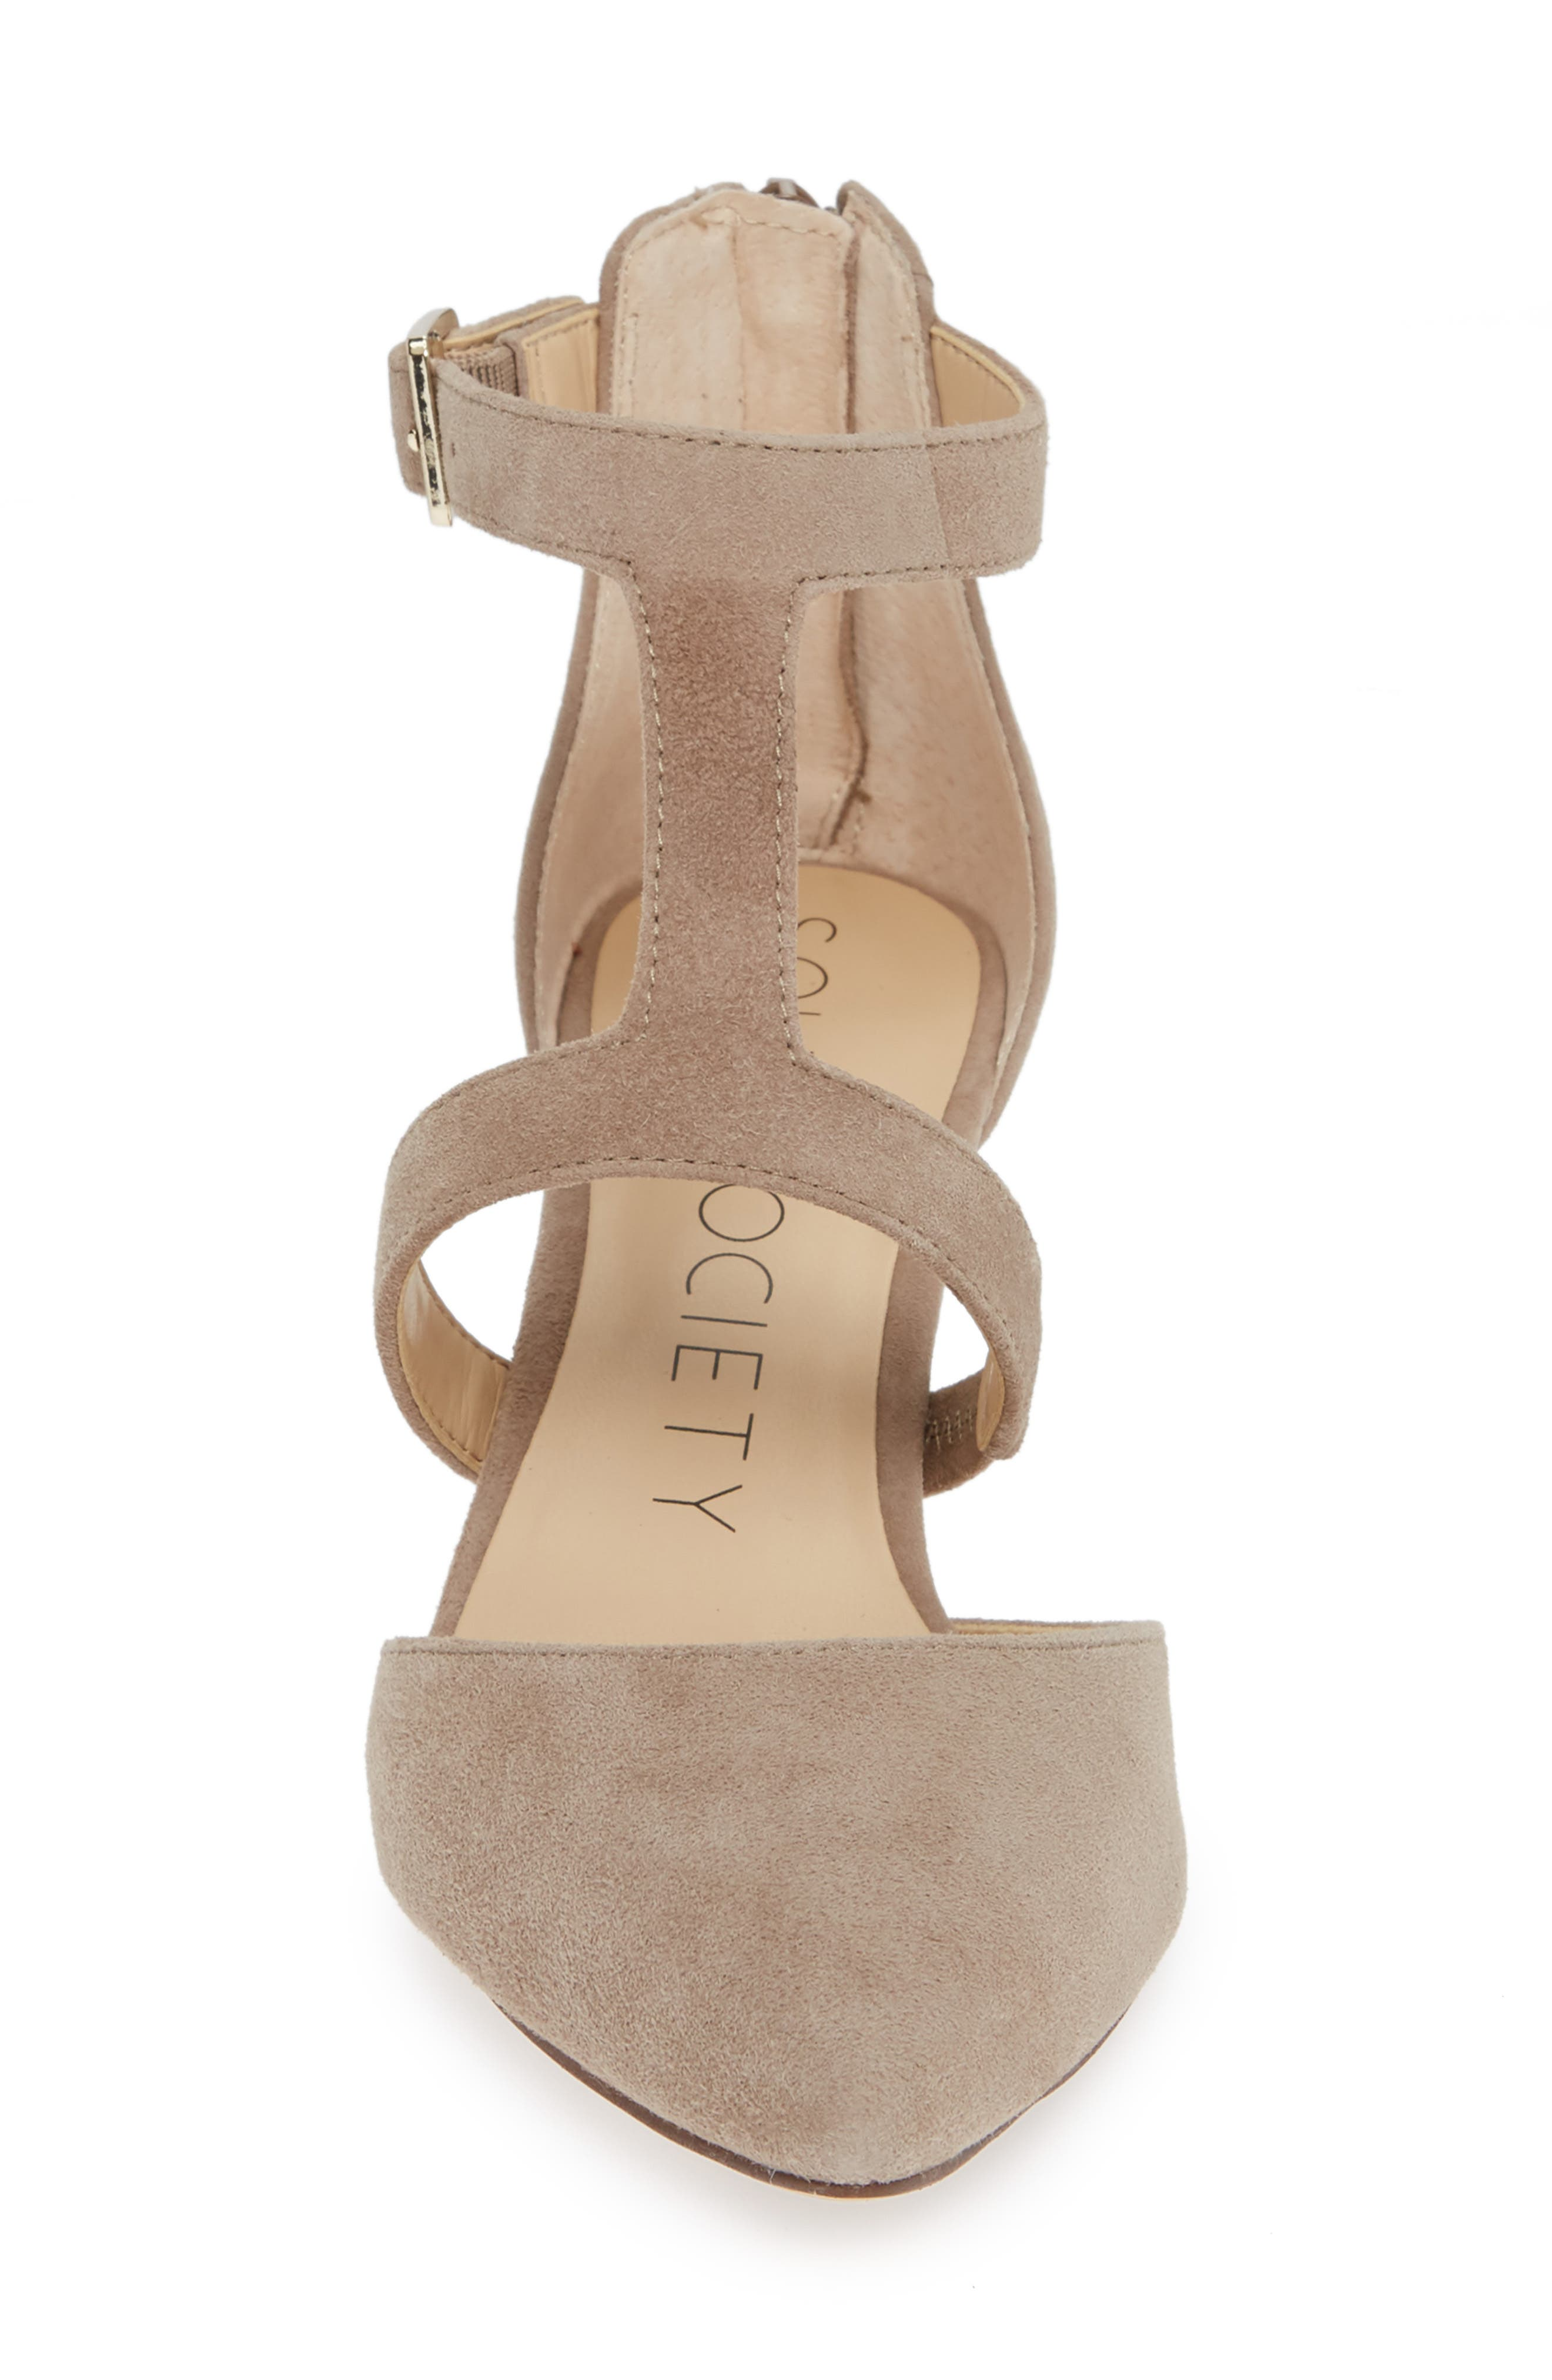 SOLE SOCIETY, Edelyn Pump, Alternate thumbnail 4, color, FALL TAUPE SUEDE